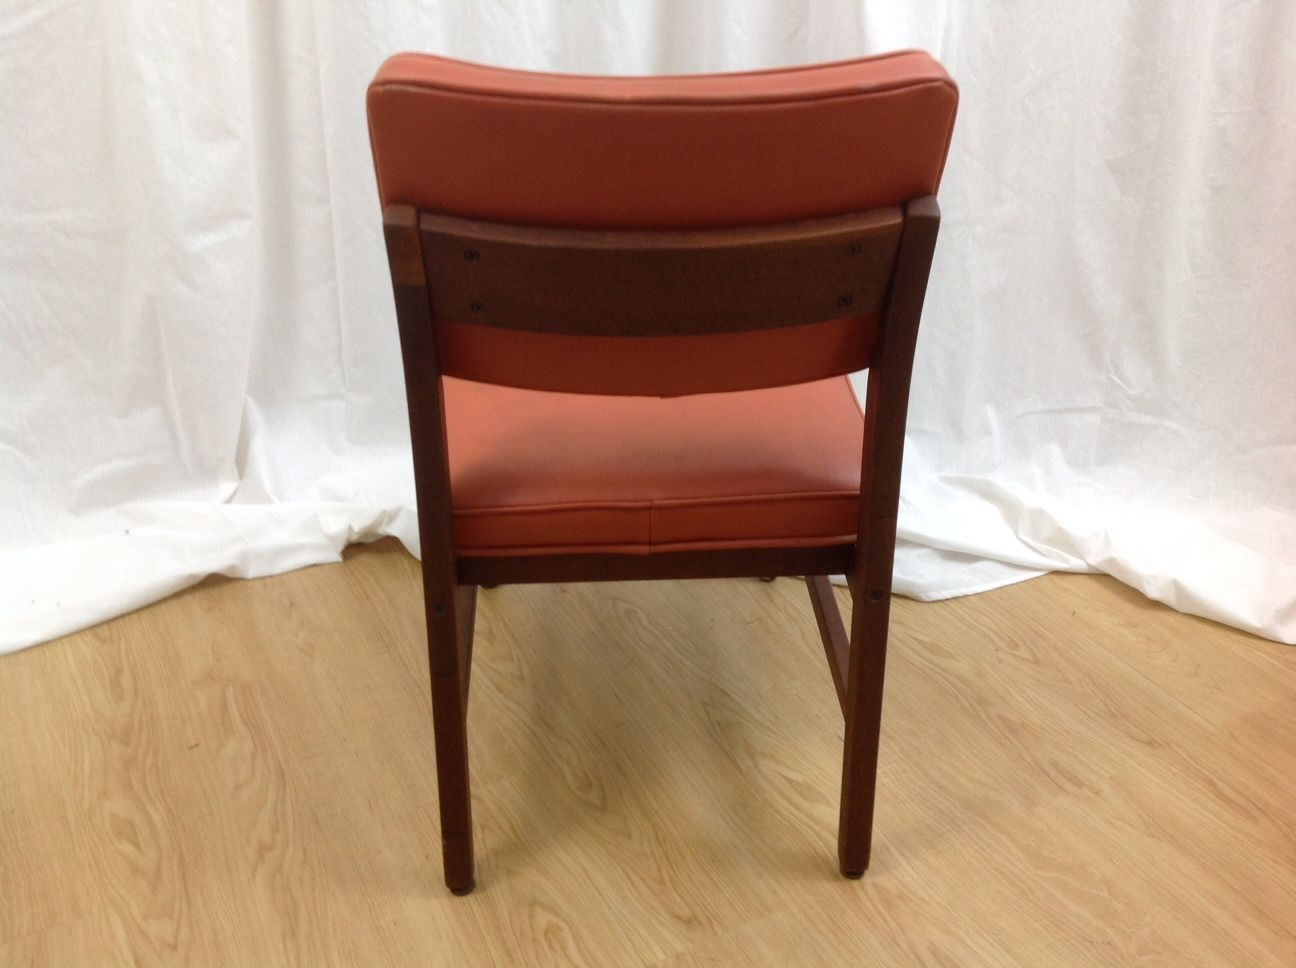 jasper chair company darvis leather recliner club brown christopher knight home vintage co mid century modern art deco wood